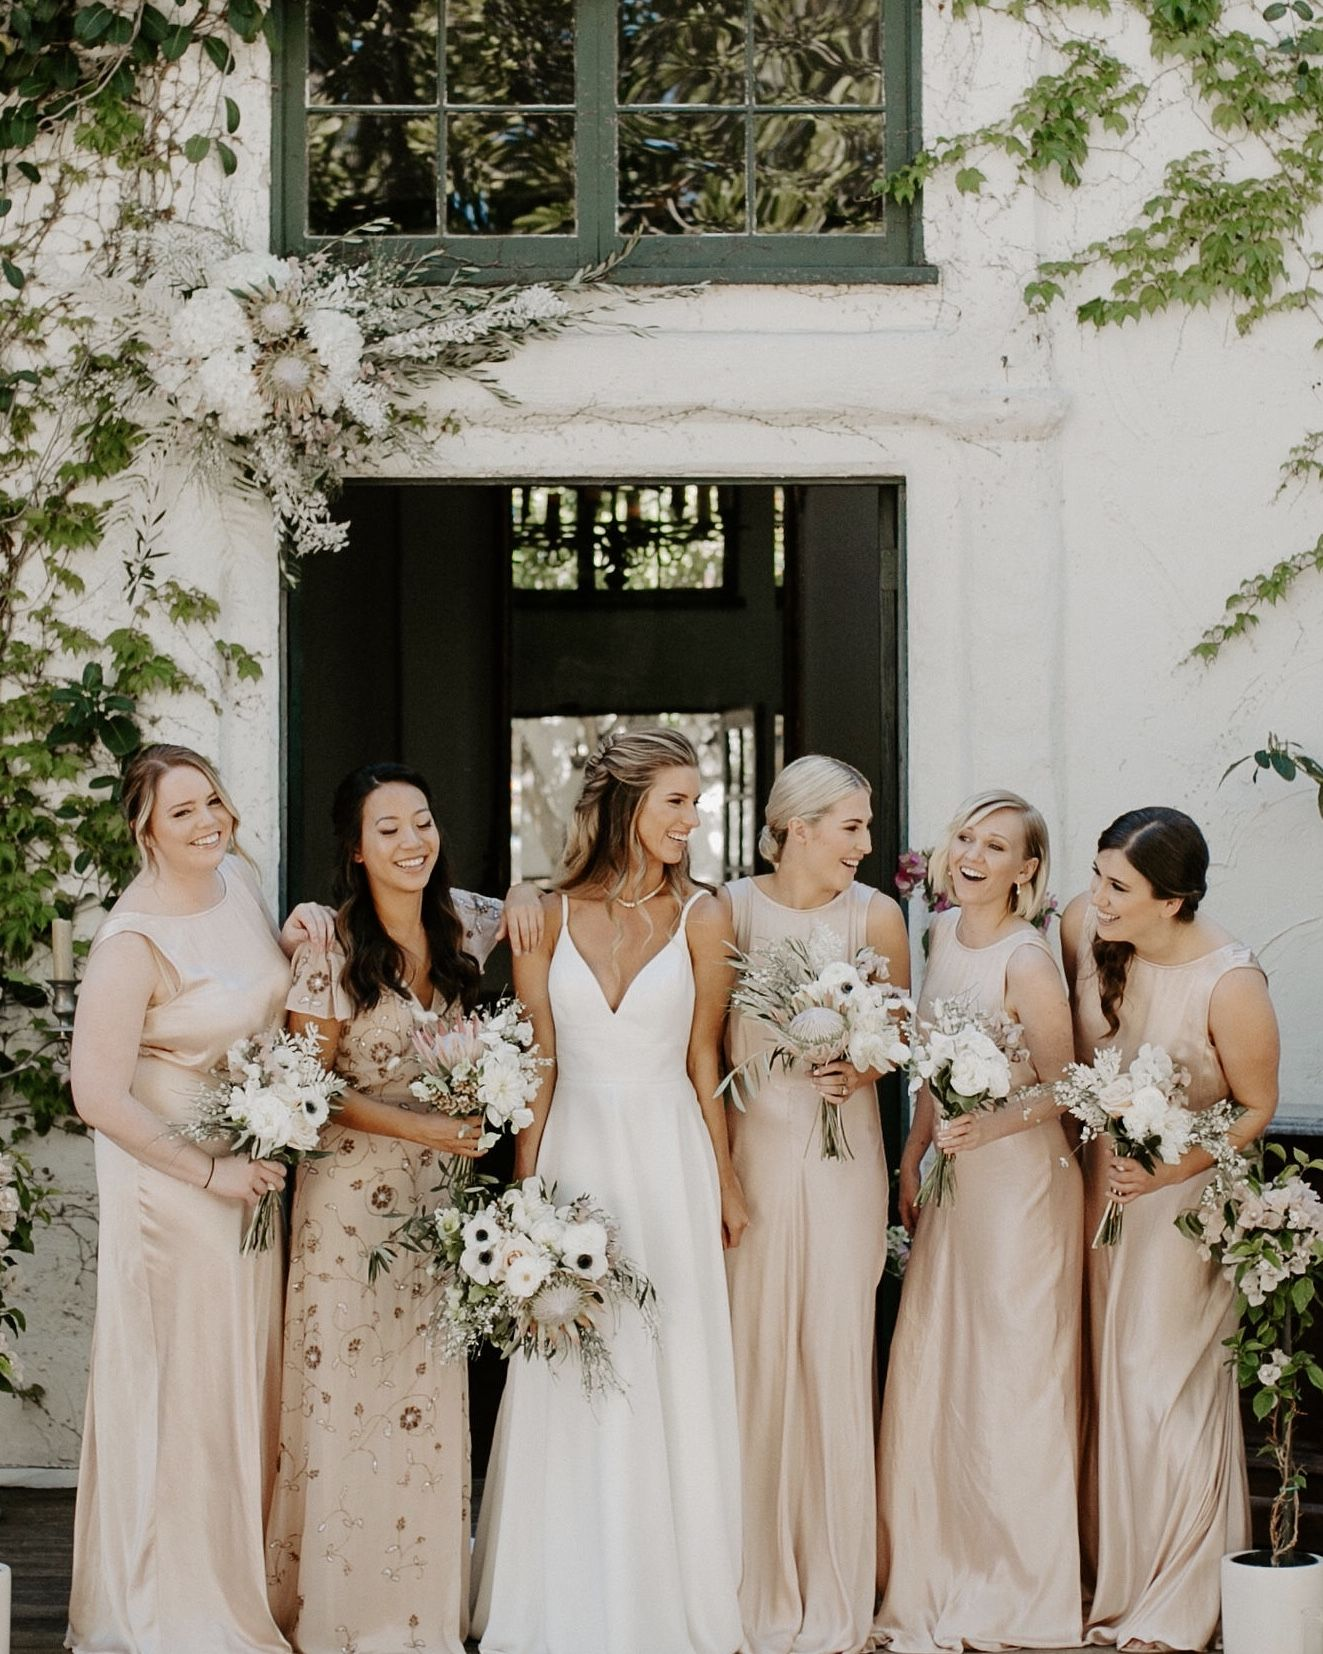 Style Extraordinary Experiences Champagne Bridesmaid Dresses Bridesmaid Dresses Strapless Champagne Colored Bridesmaid Dresses